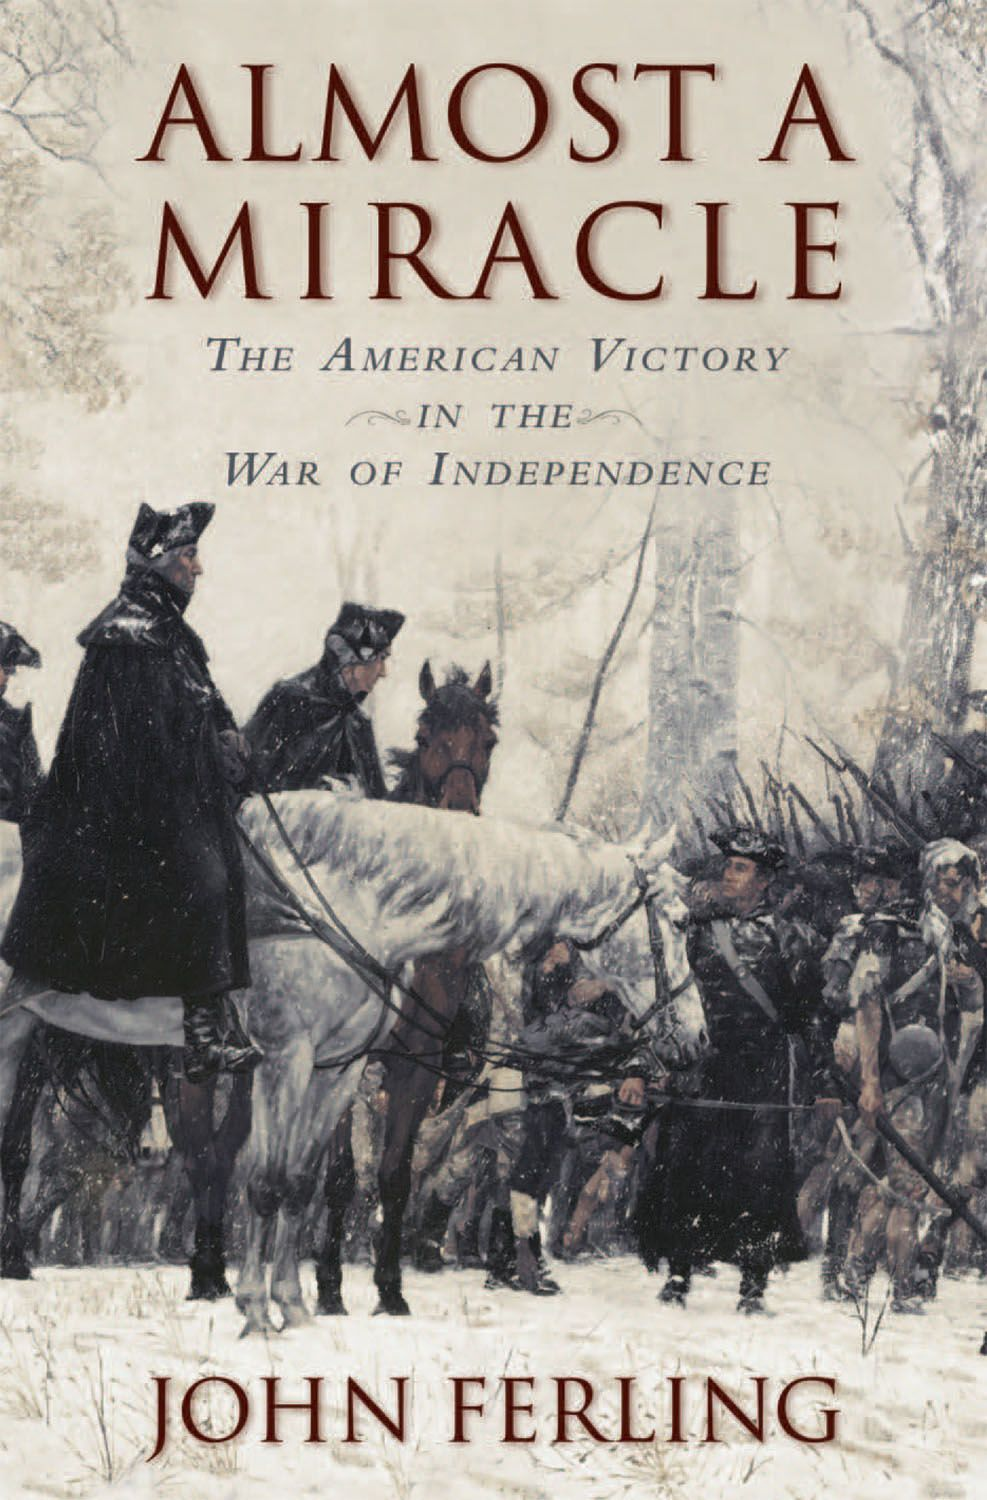 the war for independence in the us It was a defining event for both nations, transforming a continent and forging a new identity for  explore the people, events, and movements that shaped the america of the war for independence in the us today 15-1-2014.